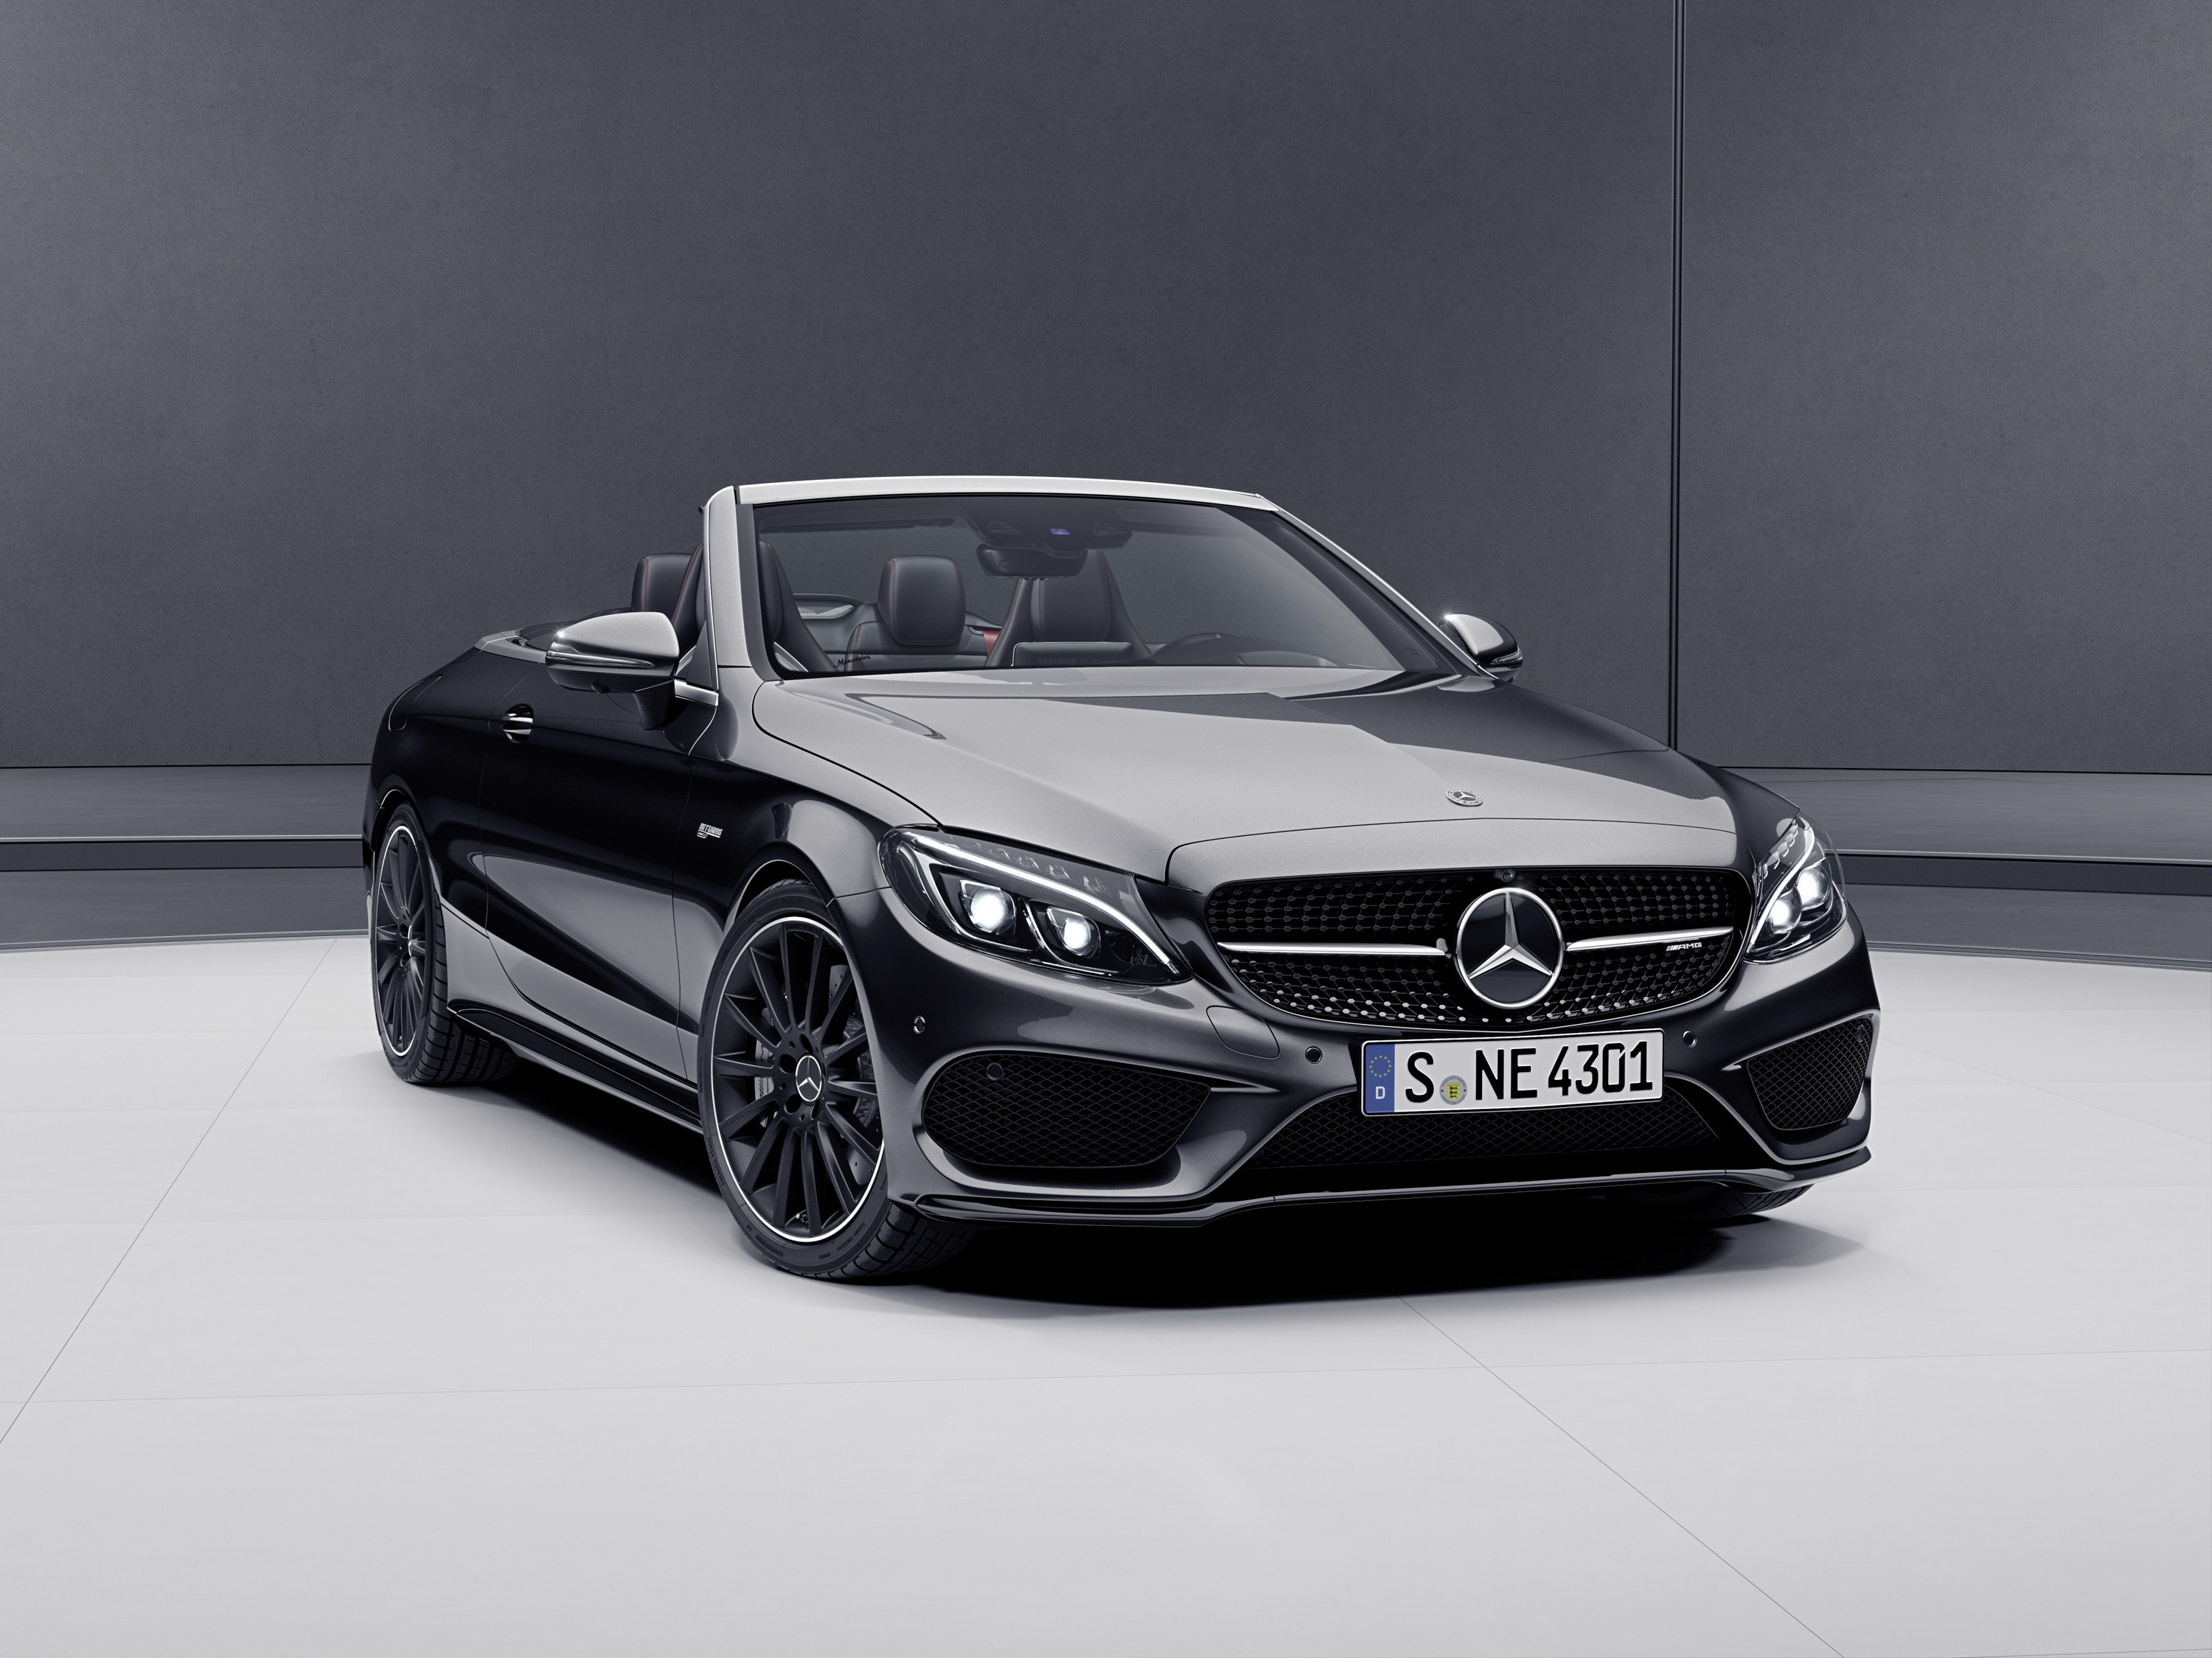 Mercedes Amg Gt C Roadster 2017 2017 Mercedes Amg Gt C Roadster Edition 50 Top Speed